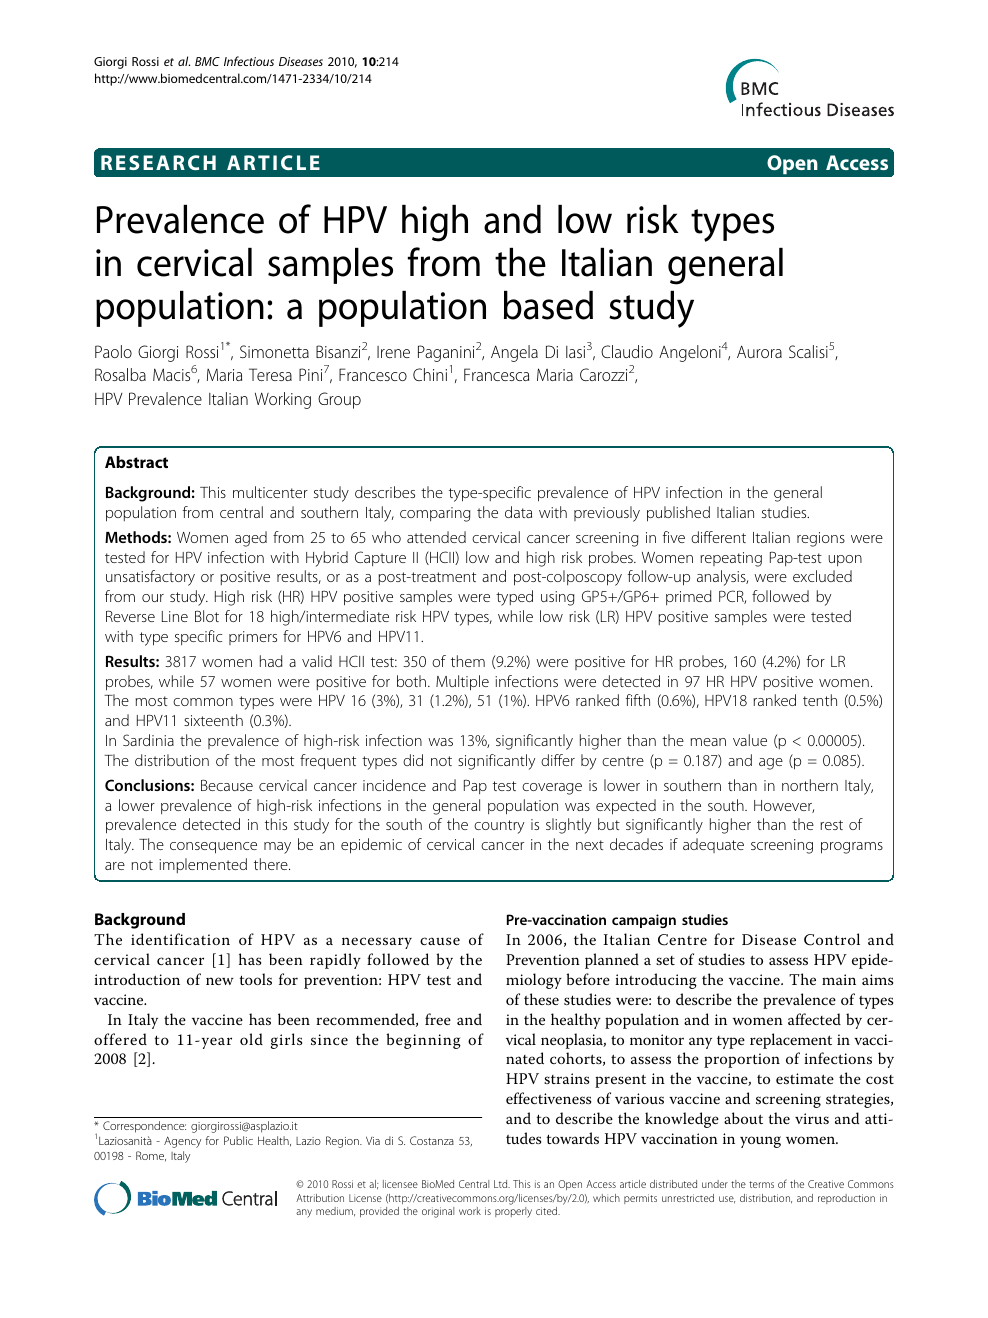 hpv prevalence italy squamous cell papilloma larynx pathology outlines